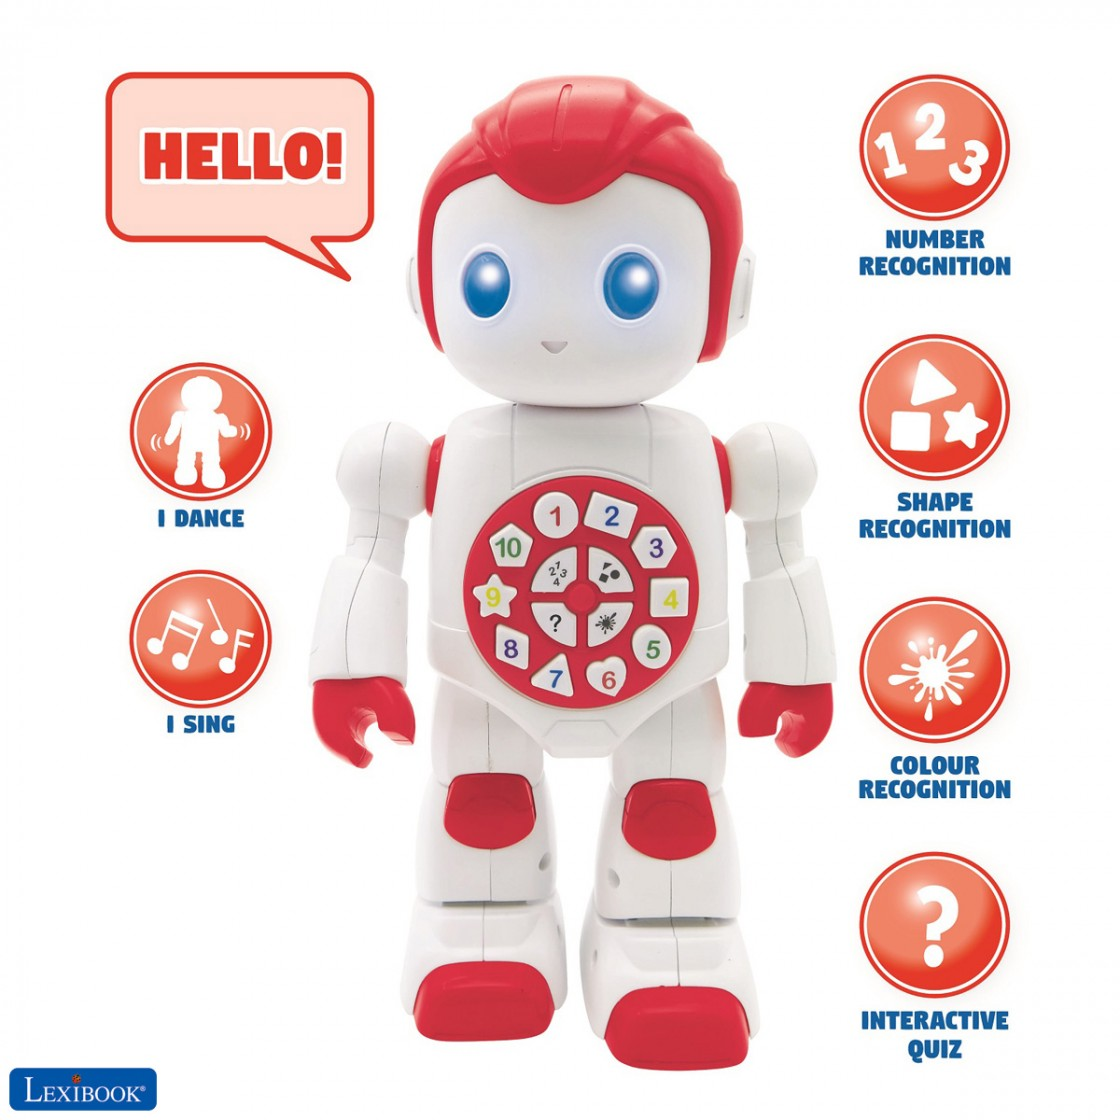 Powerman Baby Smart Interactive Toy Learning Robot Toy for ...